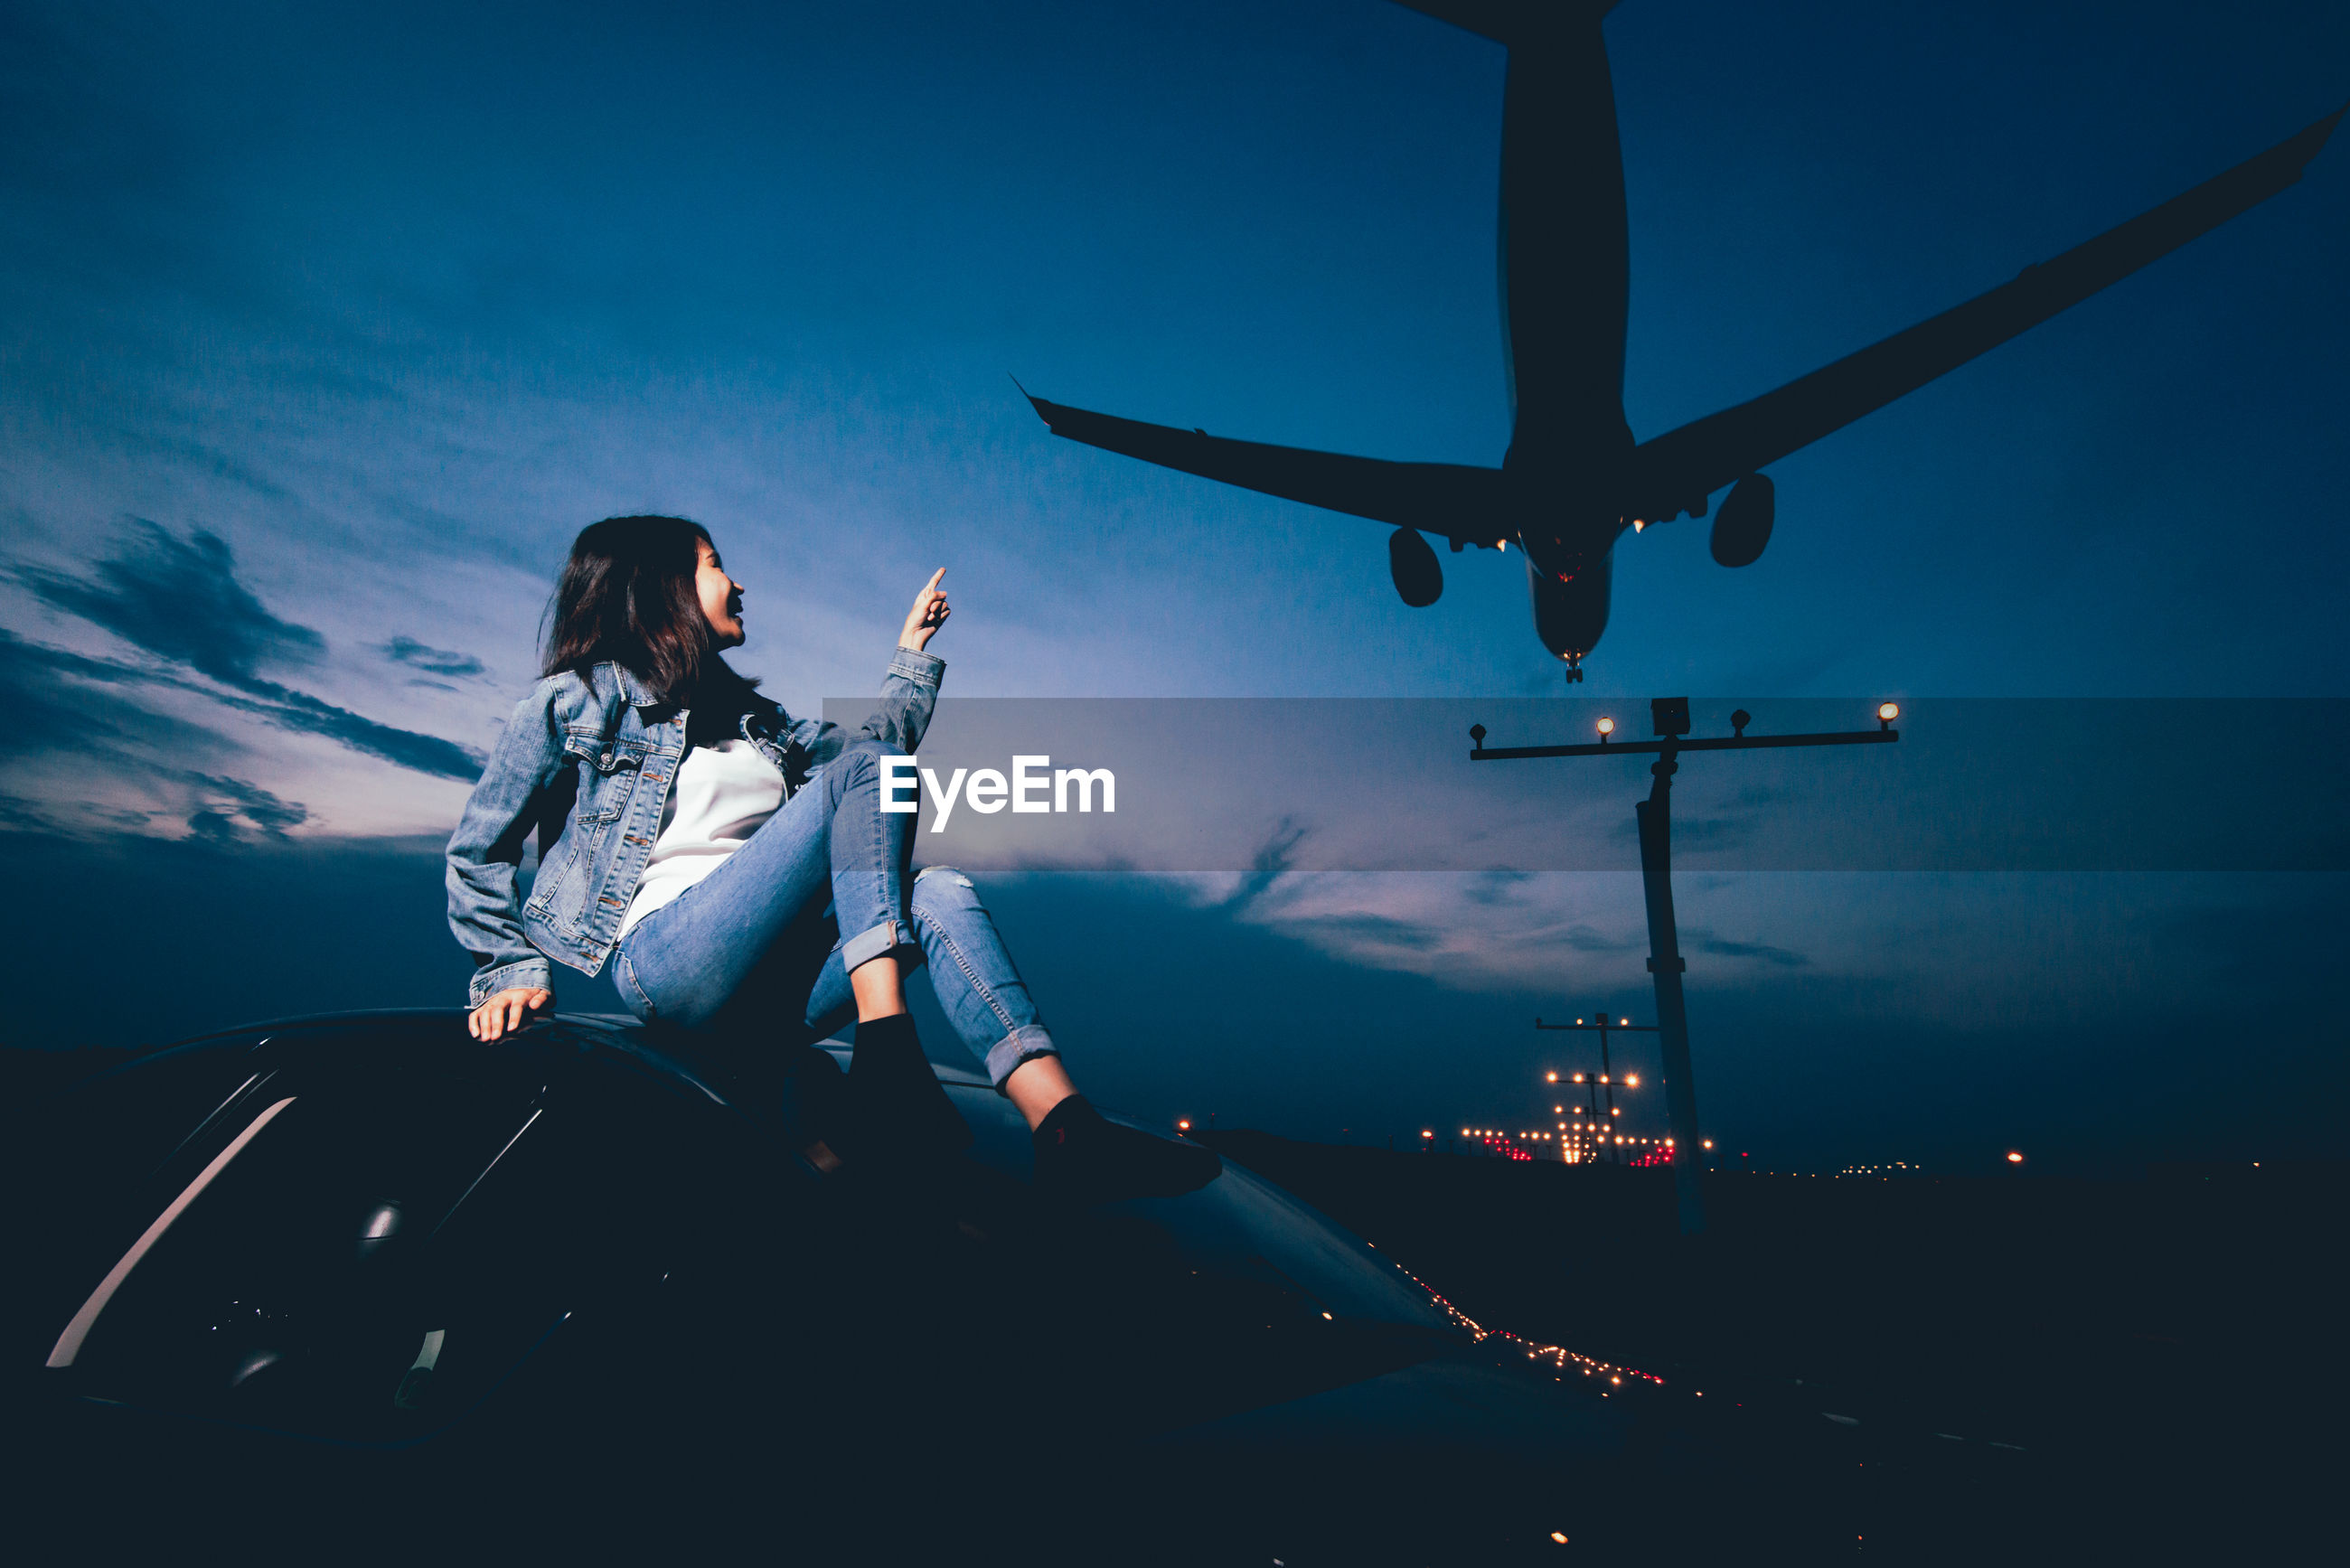 Smiling woman sitting on car with airplane landing at airport against blue sky